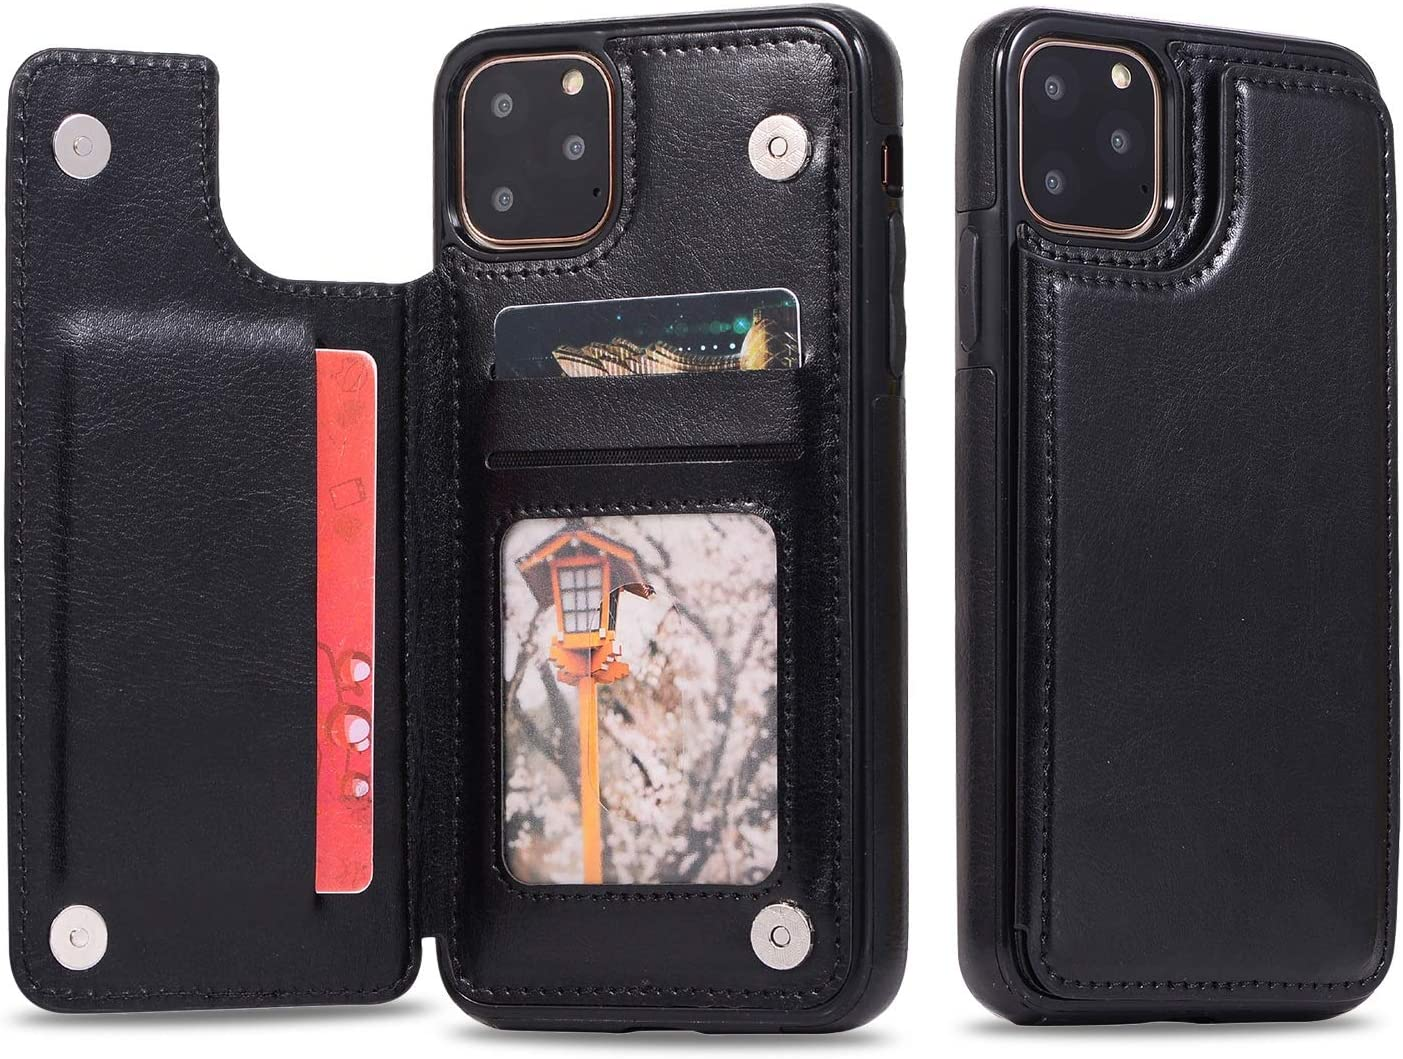 XINHUANG Leather Phone Case for iPhone 8 11 Pro Max X 7 8 Plus 5 5s Business Card Holders Retro PU Case for iPhone Xs Max XR 6 6s 7 8 XS (Color : A, Size : Iphone6/6S Plus)